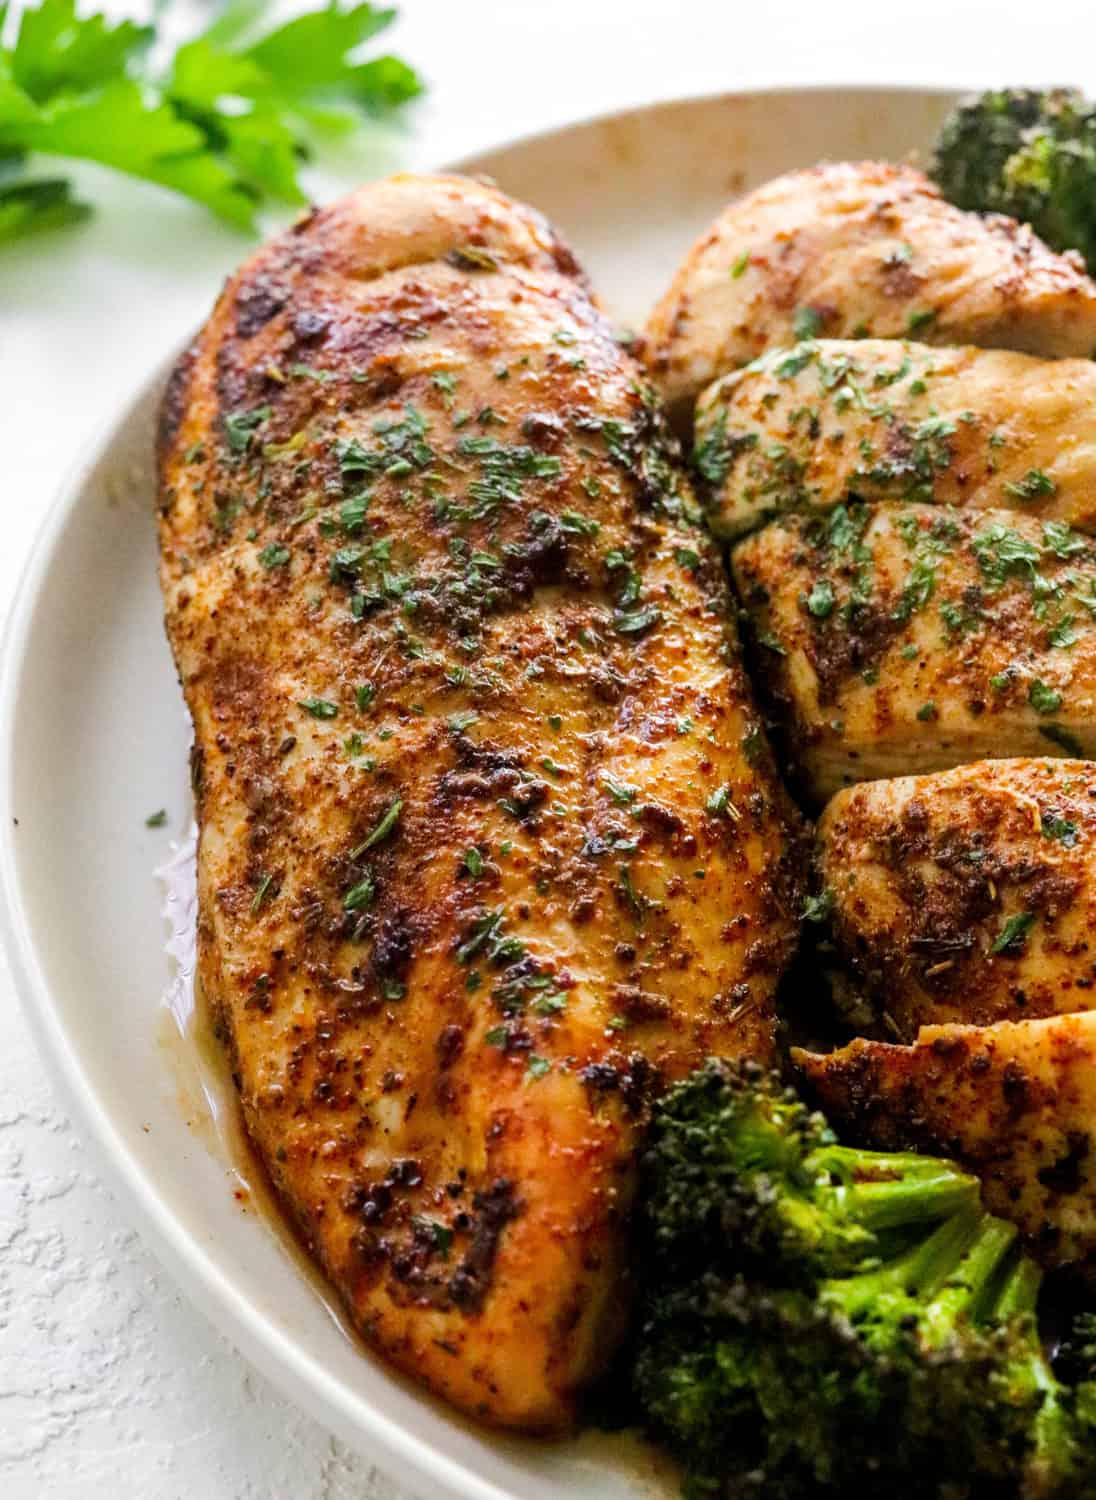 Large piece of crispy seasoned chicken breast on a round white plate next to another piece cooked chicken that is sliced, with some cooked broccoli next to it.